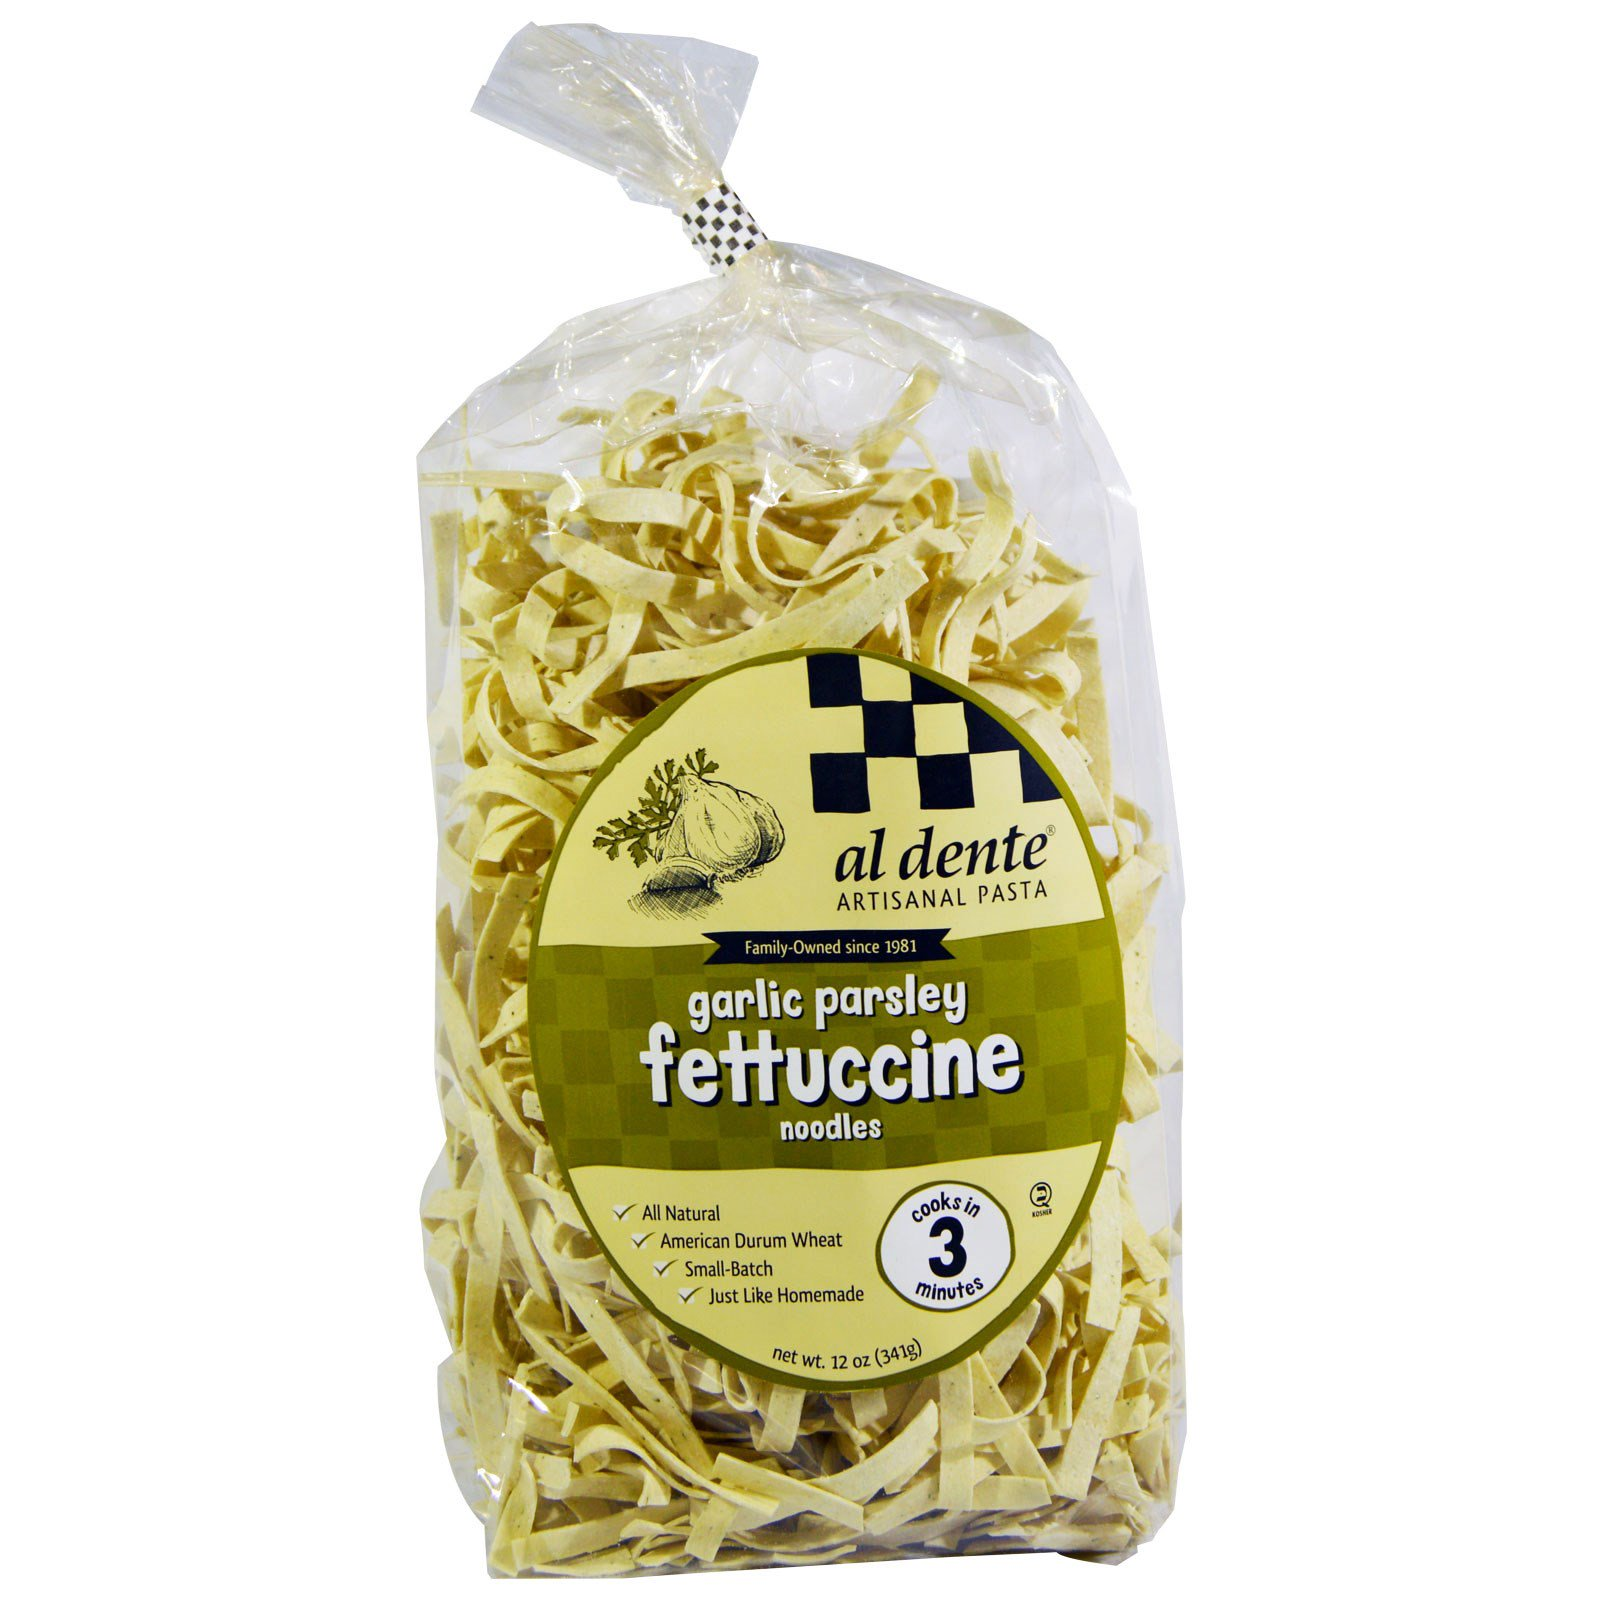 al dente pasta garlic parsley fettuccine noodles 12 oz 341 g. Black Bedroom Furniture Sets. Home Design Ideas